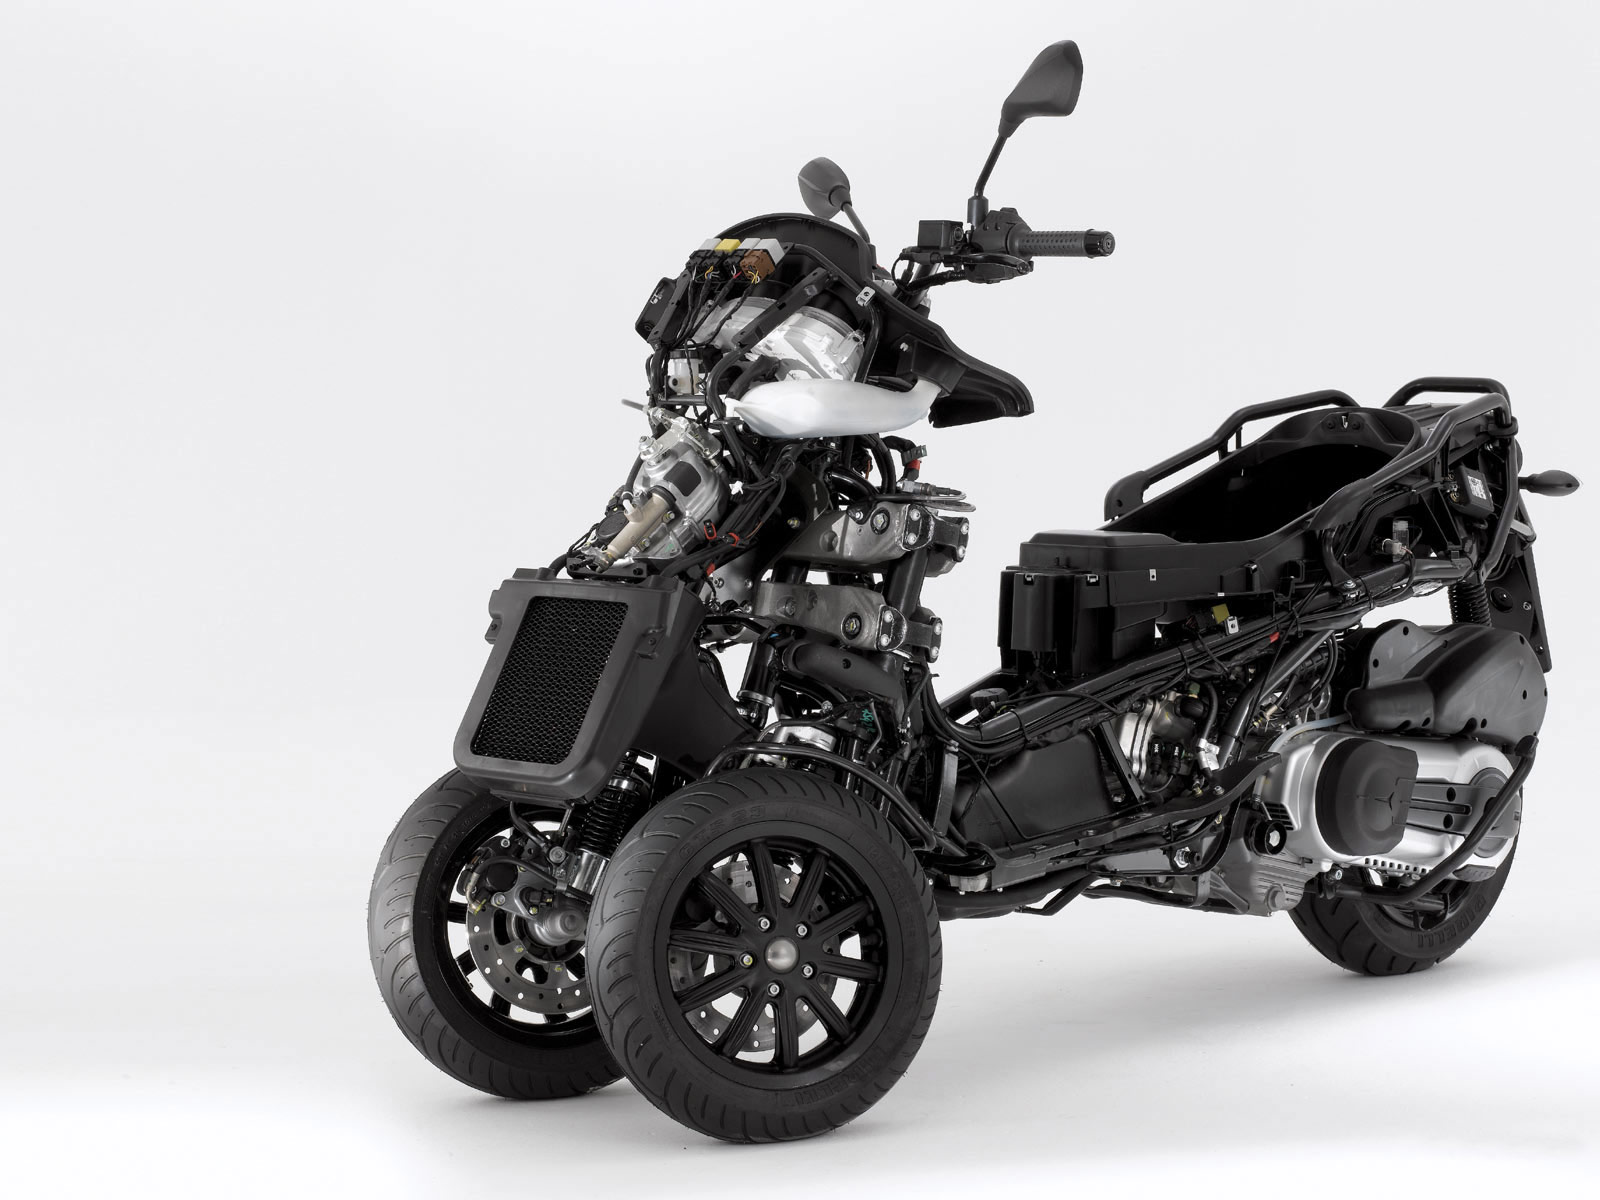 scooter picture 2007 gilera fuoco 500ie accident lawyers. Black Bedroom Furniture Sets. Home Design Ideas